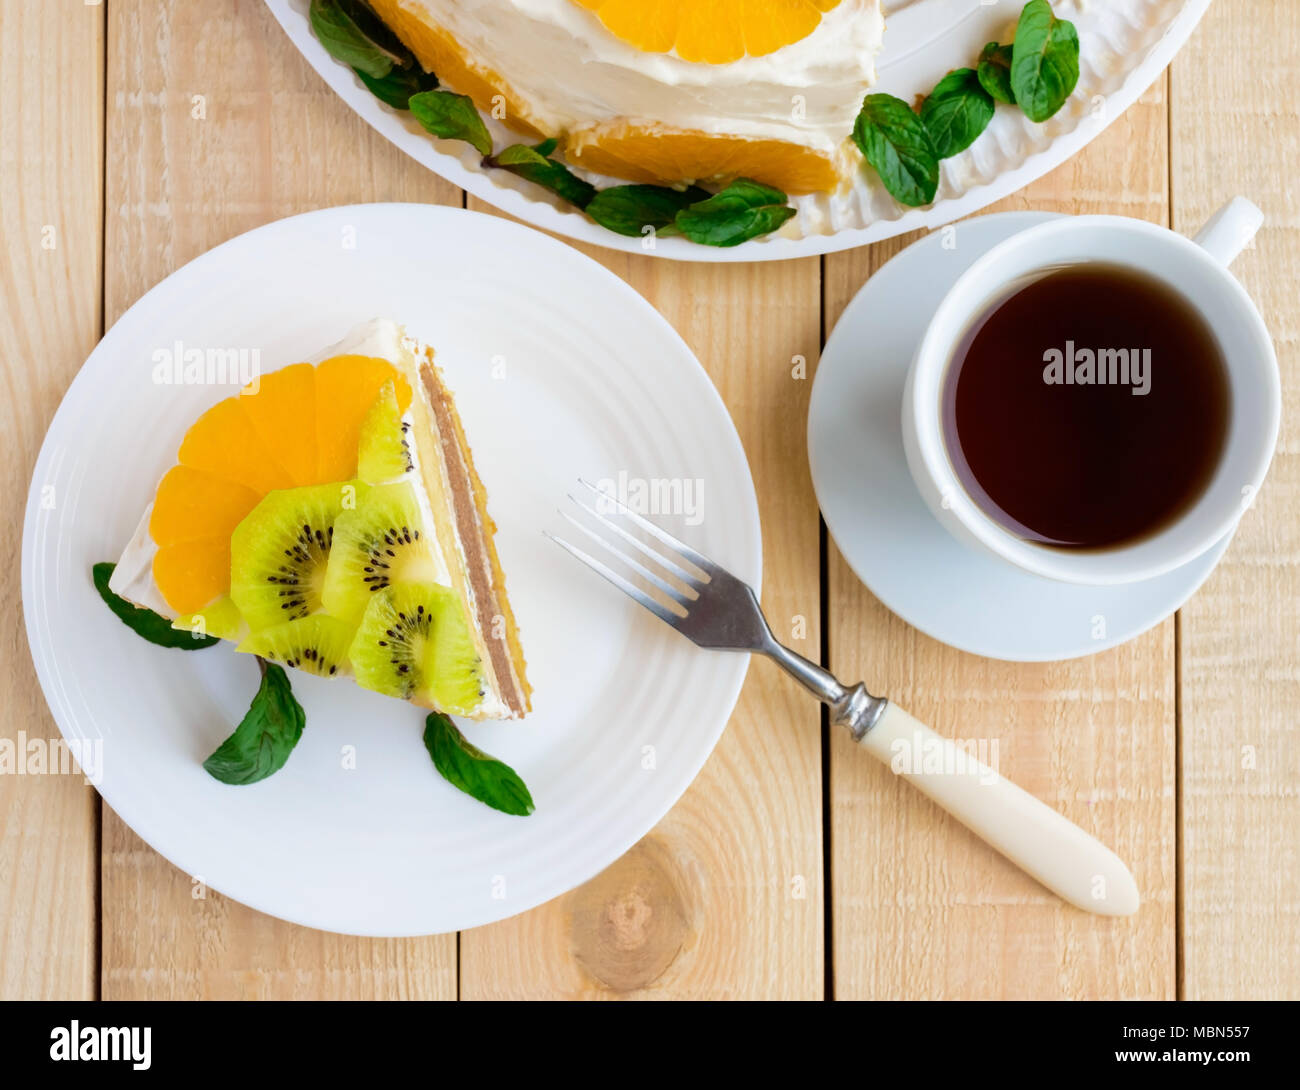 A piece of fruit cake (kiwi, orange, mint leaves) on a white plate on wooden background and a cup of tea. The top view - Stock Image